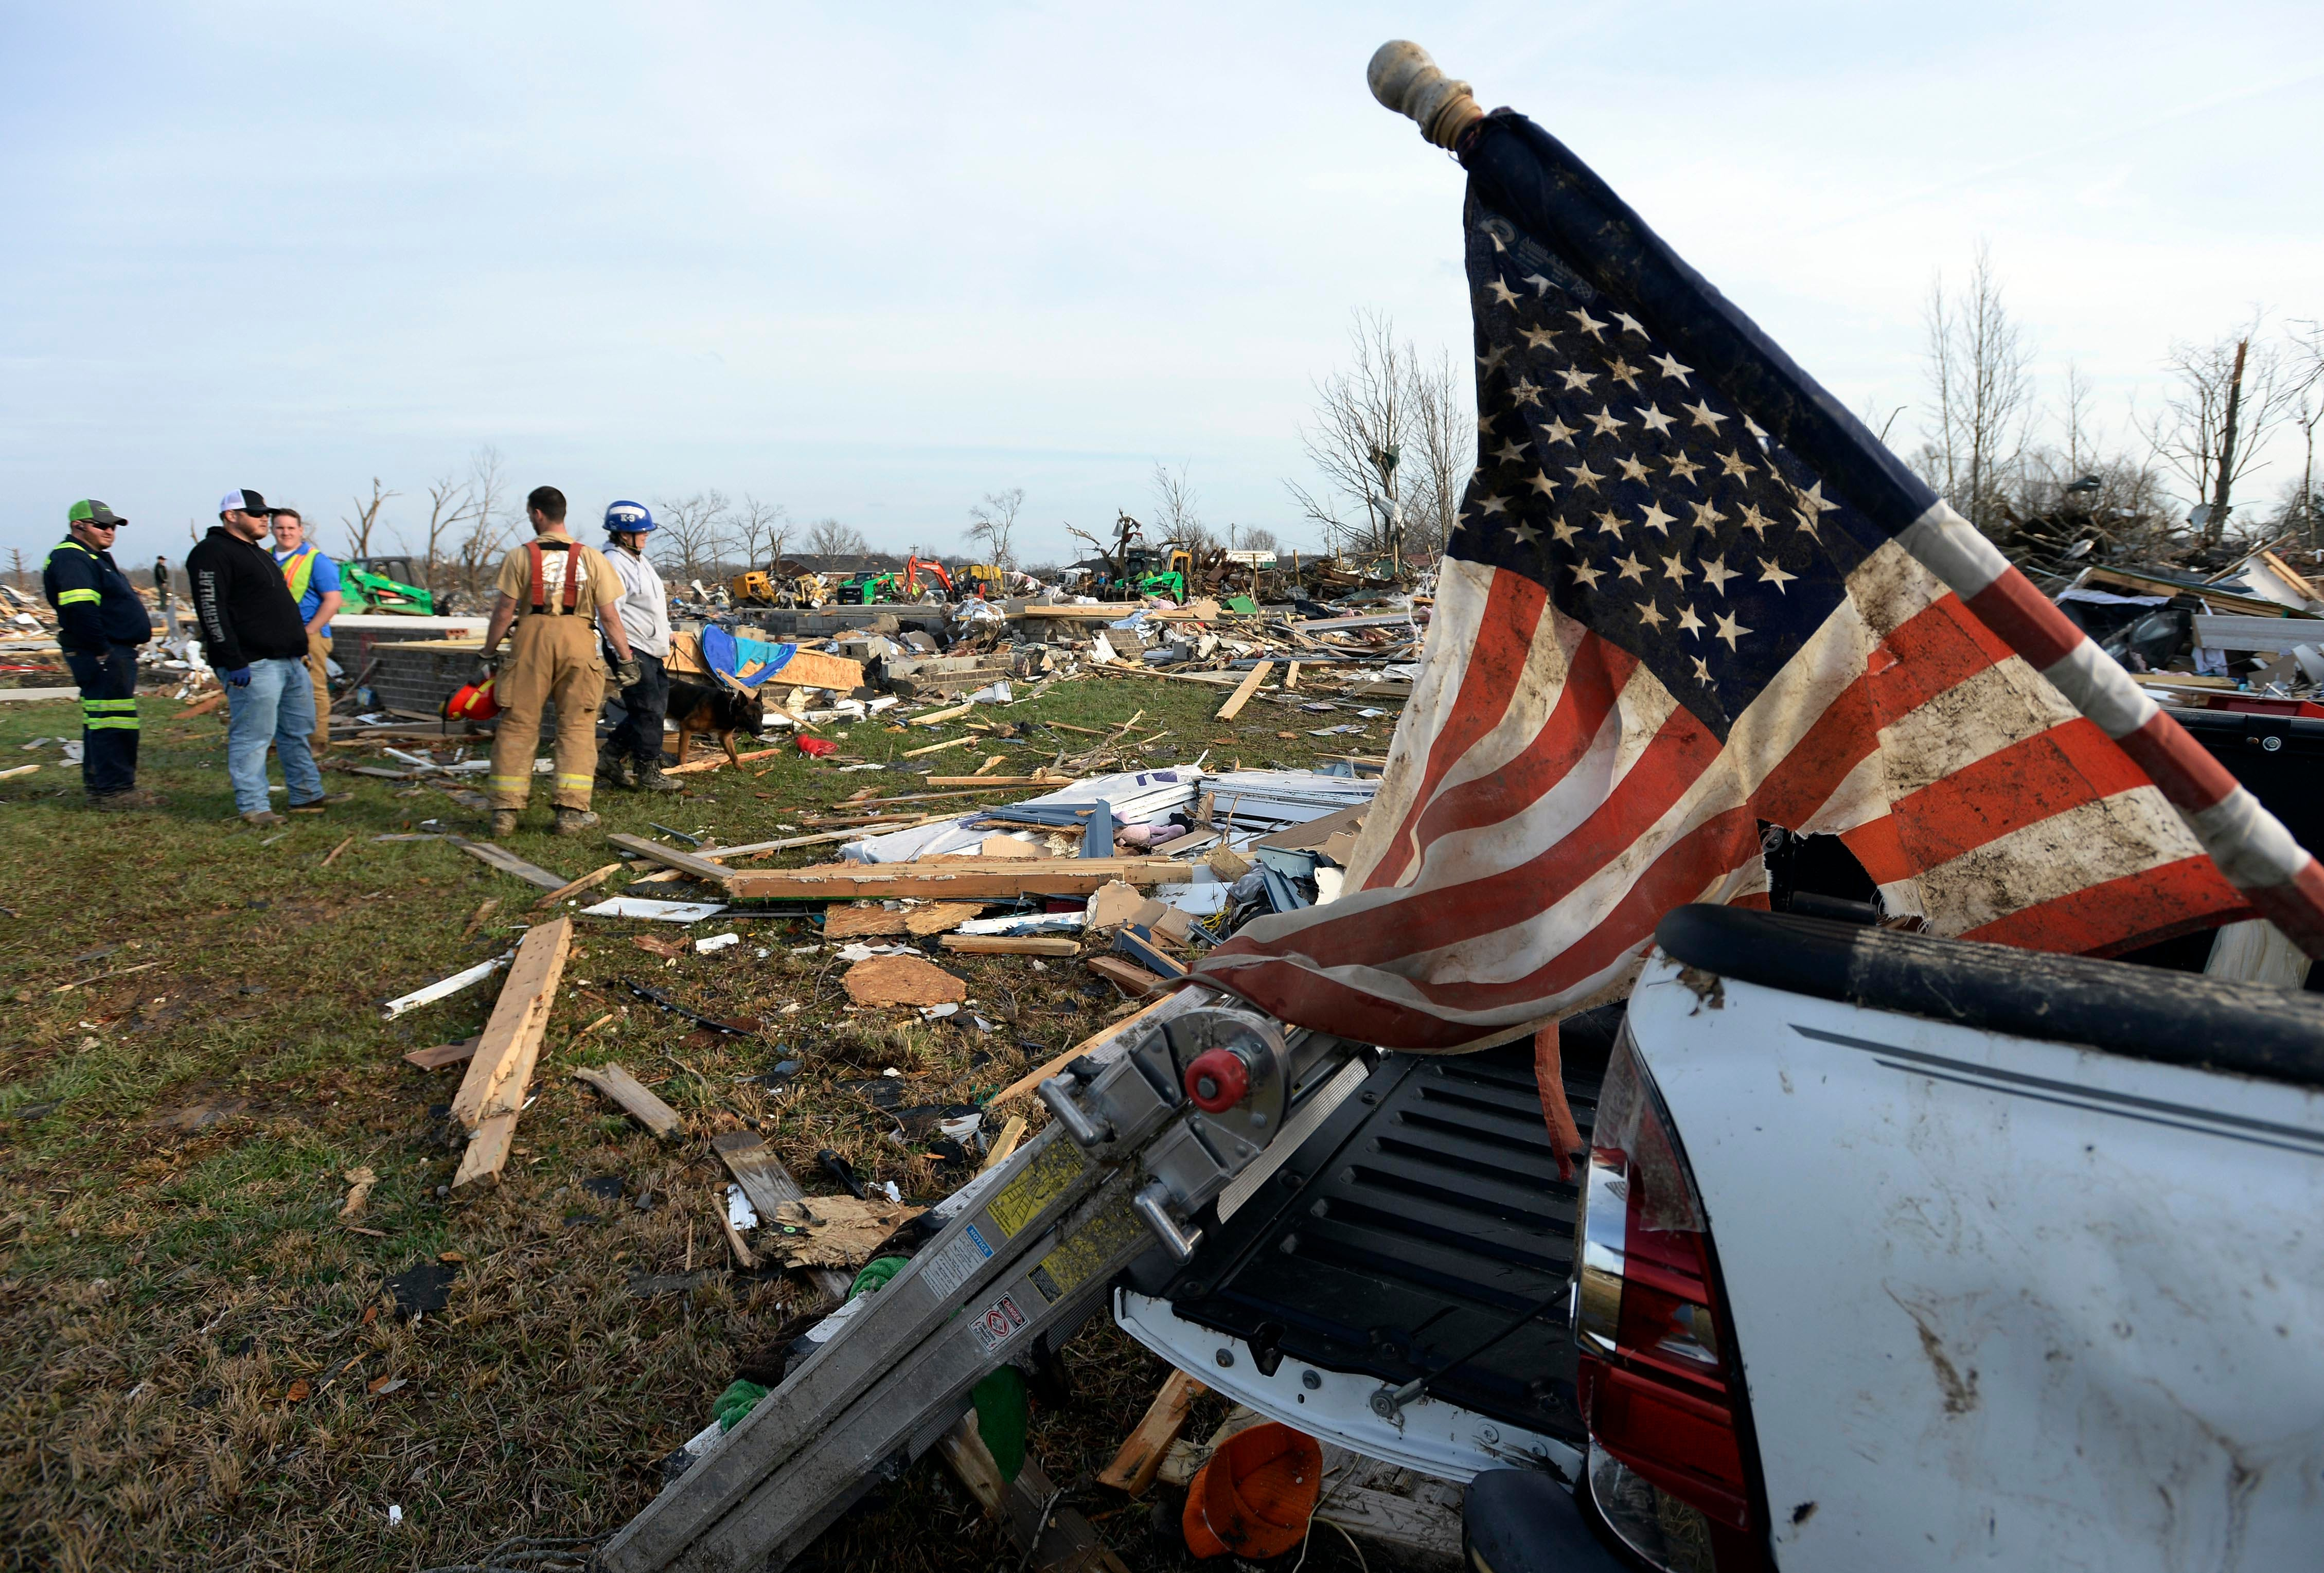 A search-and-rescue dog team from Ohio and Tennessee Task Force Recovery, left,  head out to look for missing people in debris near Hensley Street after a tornado destroyed homes on Tuesday, March 3, 2020, in Cookeville, Tenn.